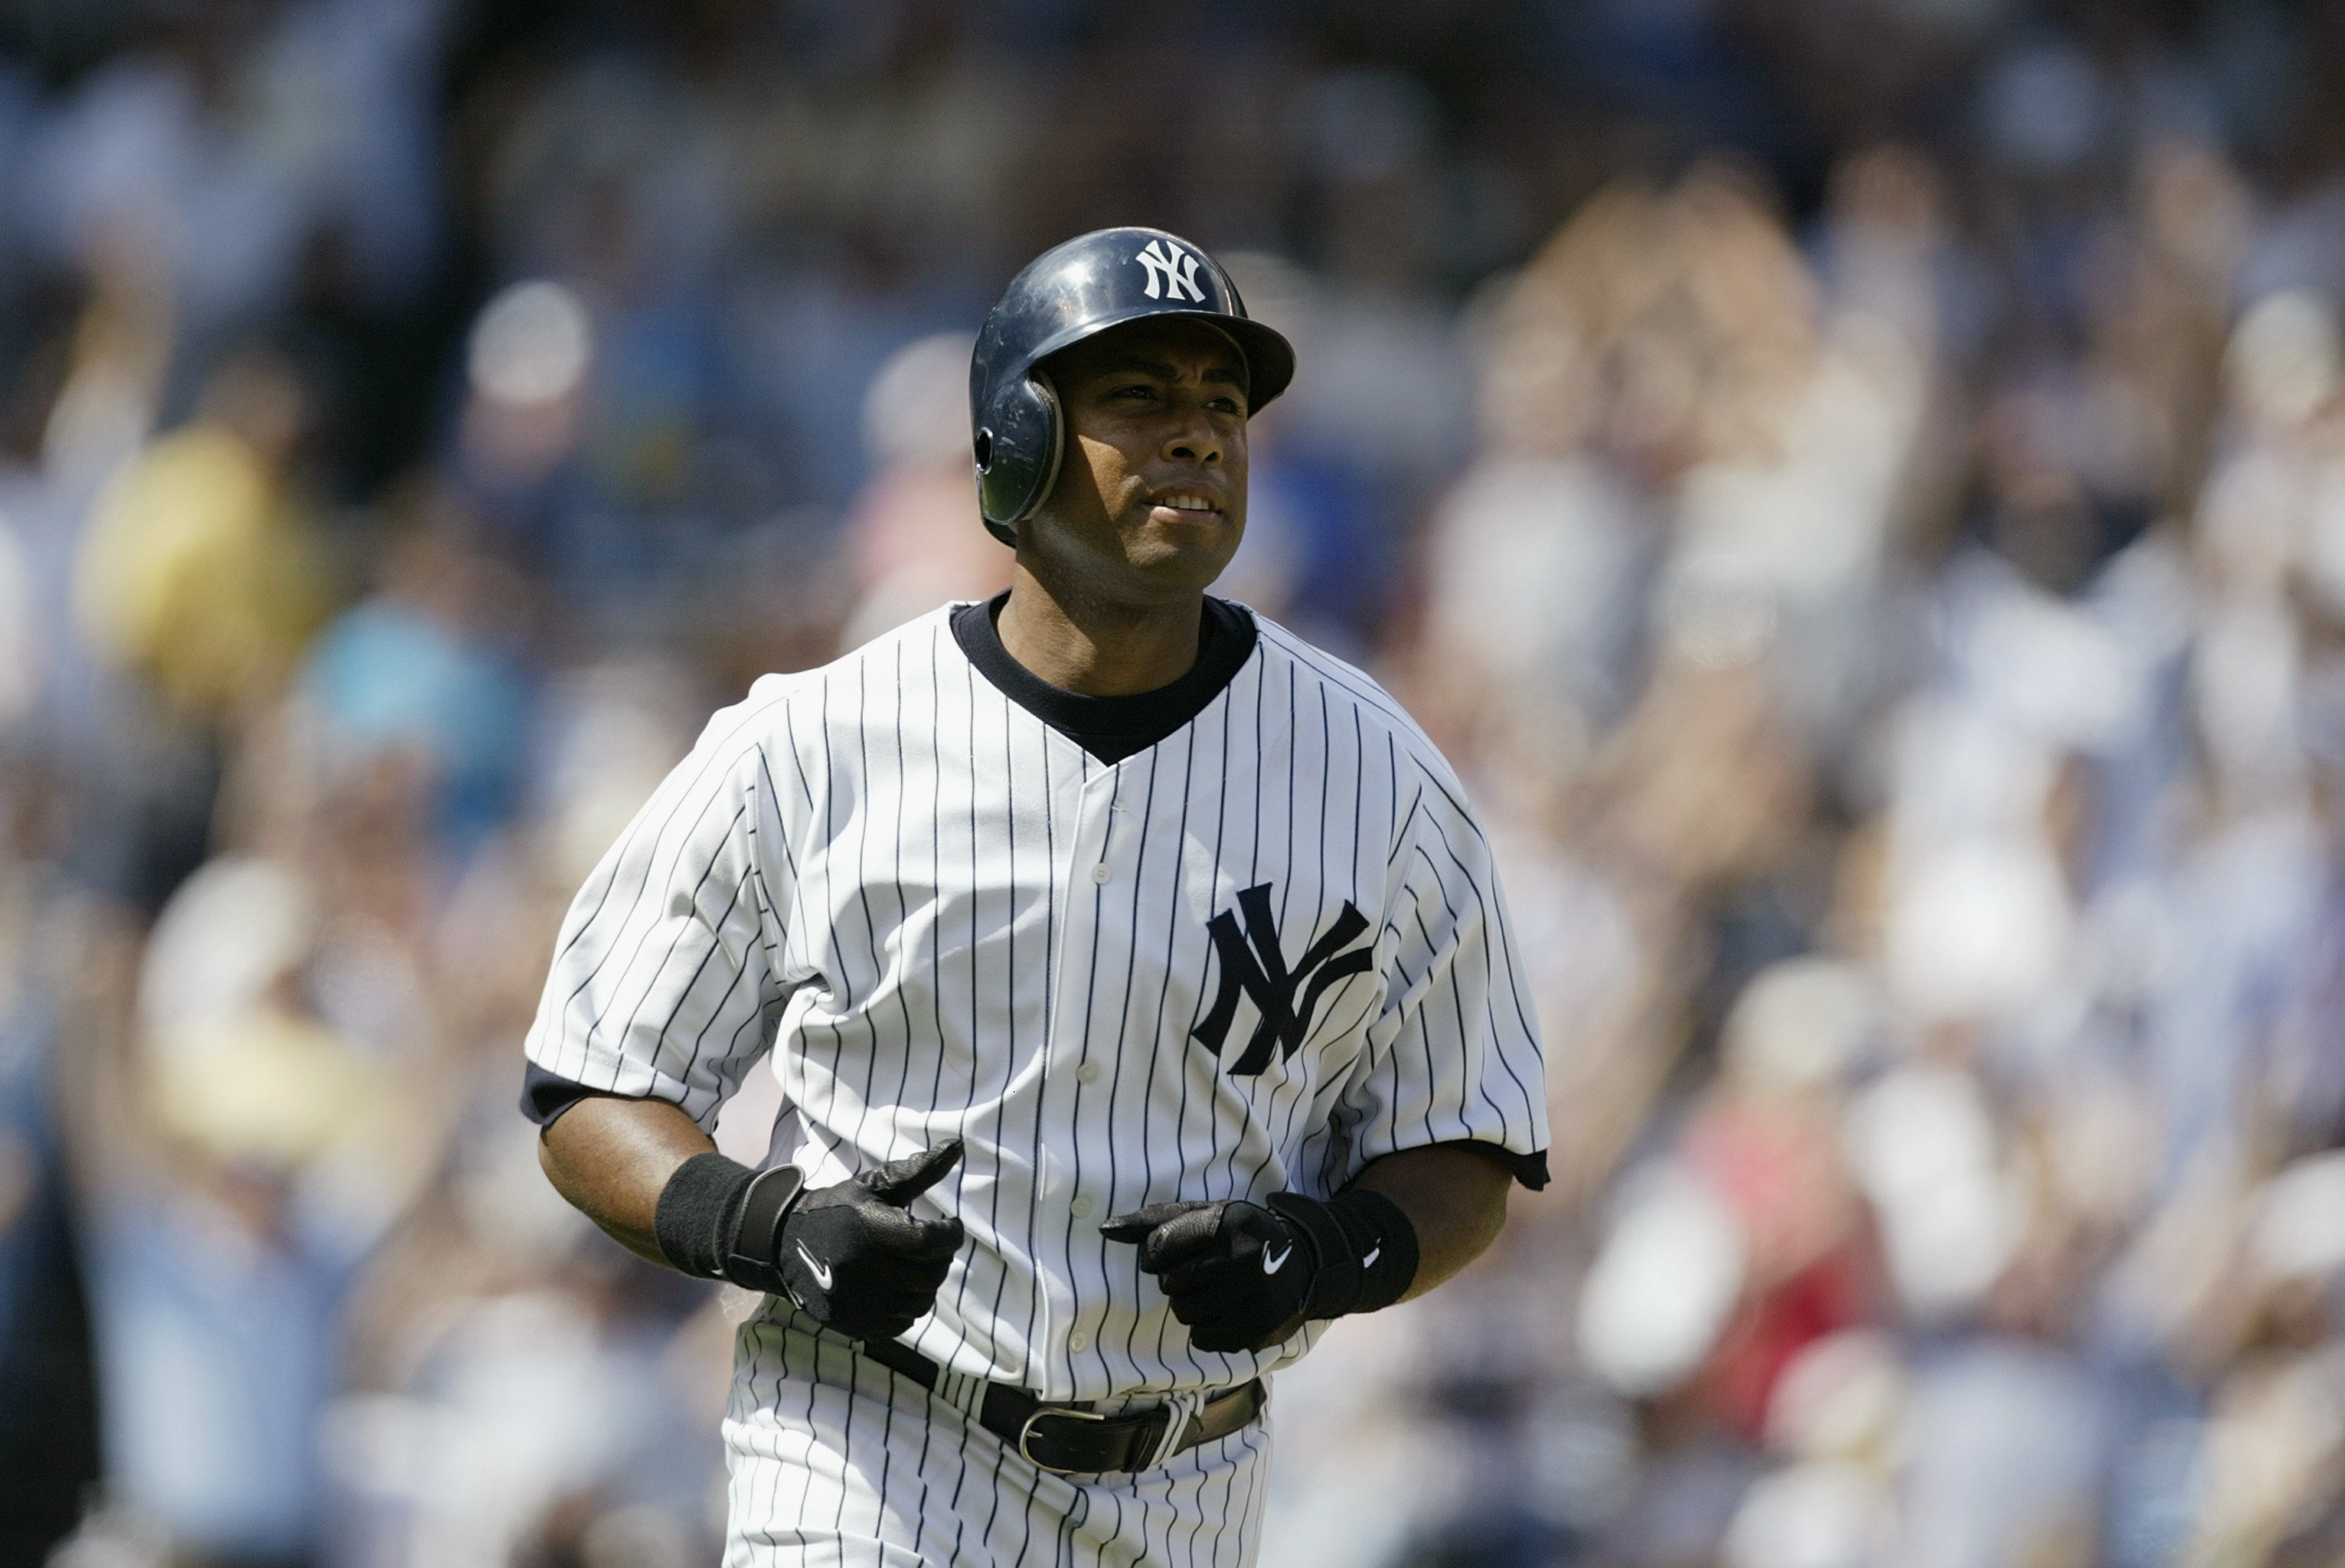 Bernie Williams #51 of the New York Yankees runs during the game against the Toronto Blue Jays at Yankee Stadium on August 9, 2004 in the Bronx, New York.  | Photo: GettyImages